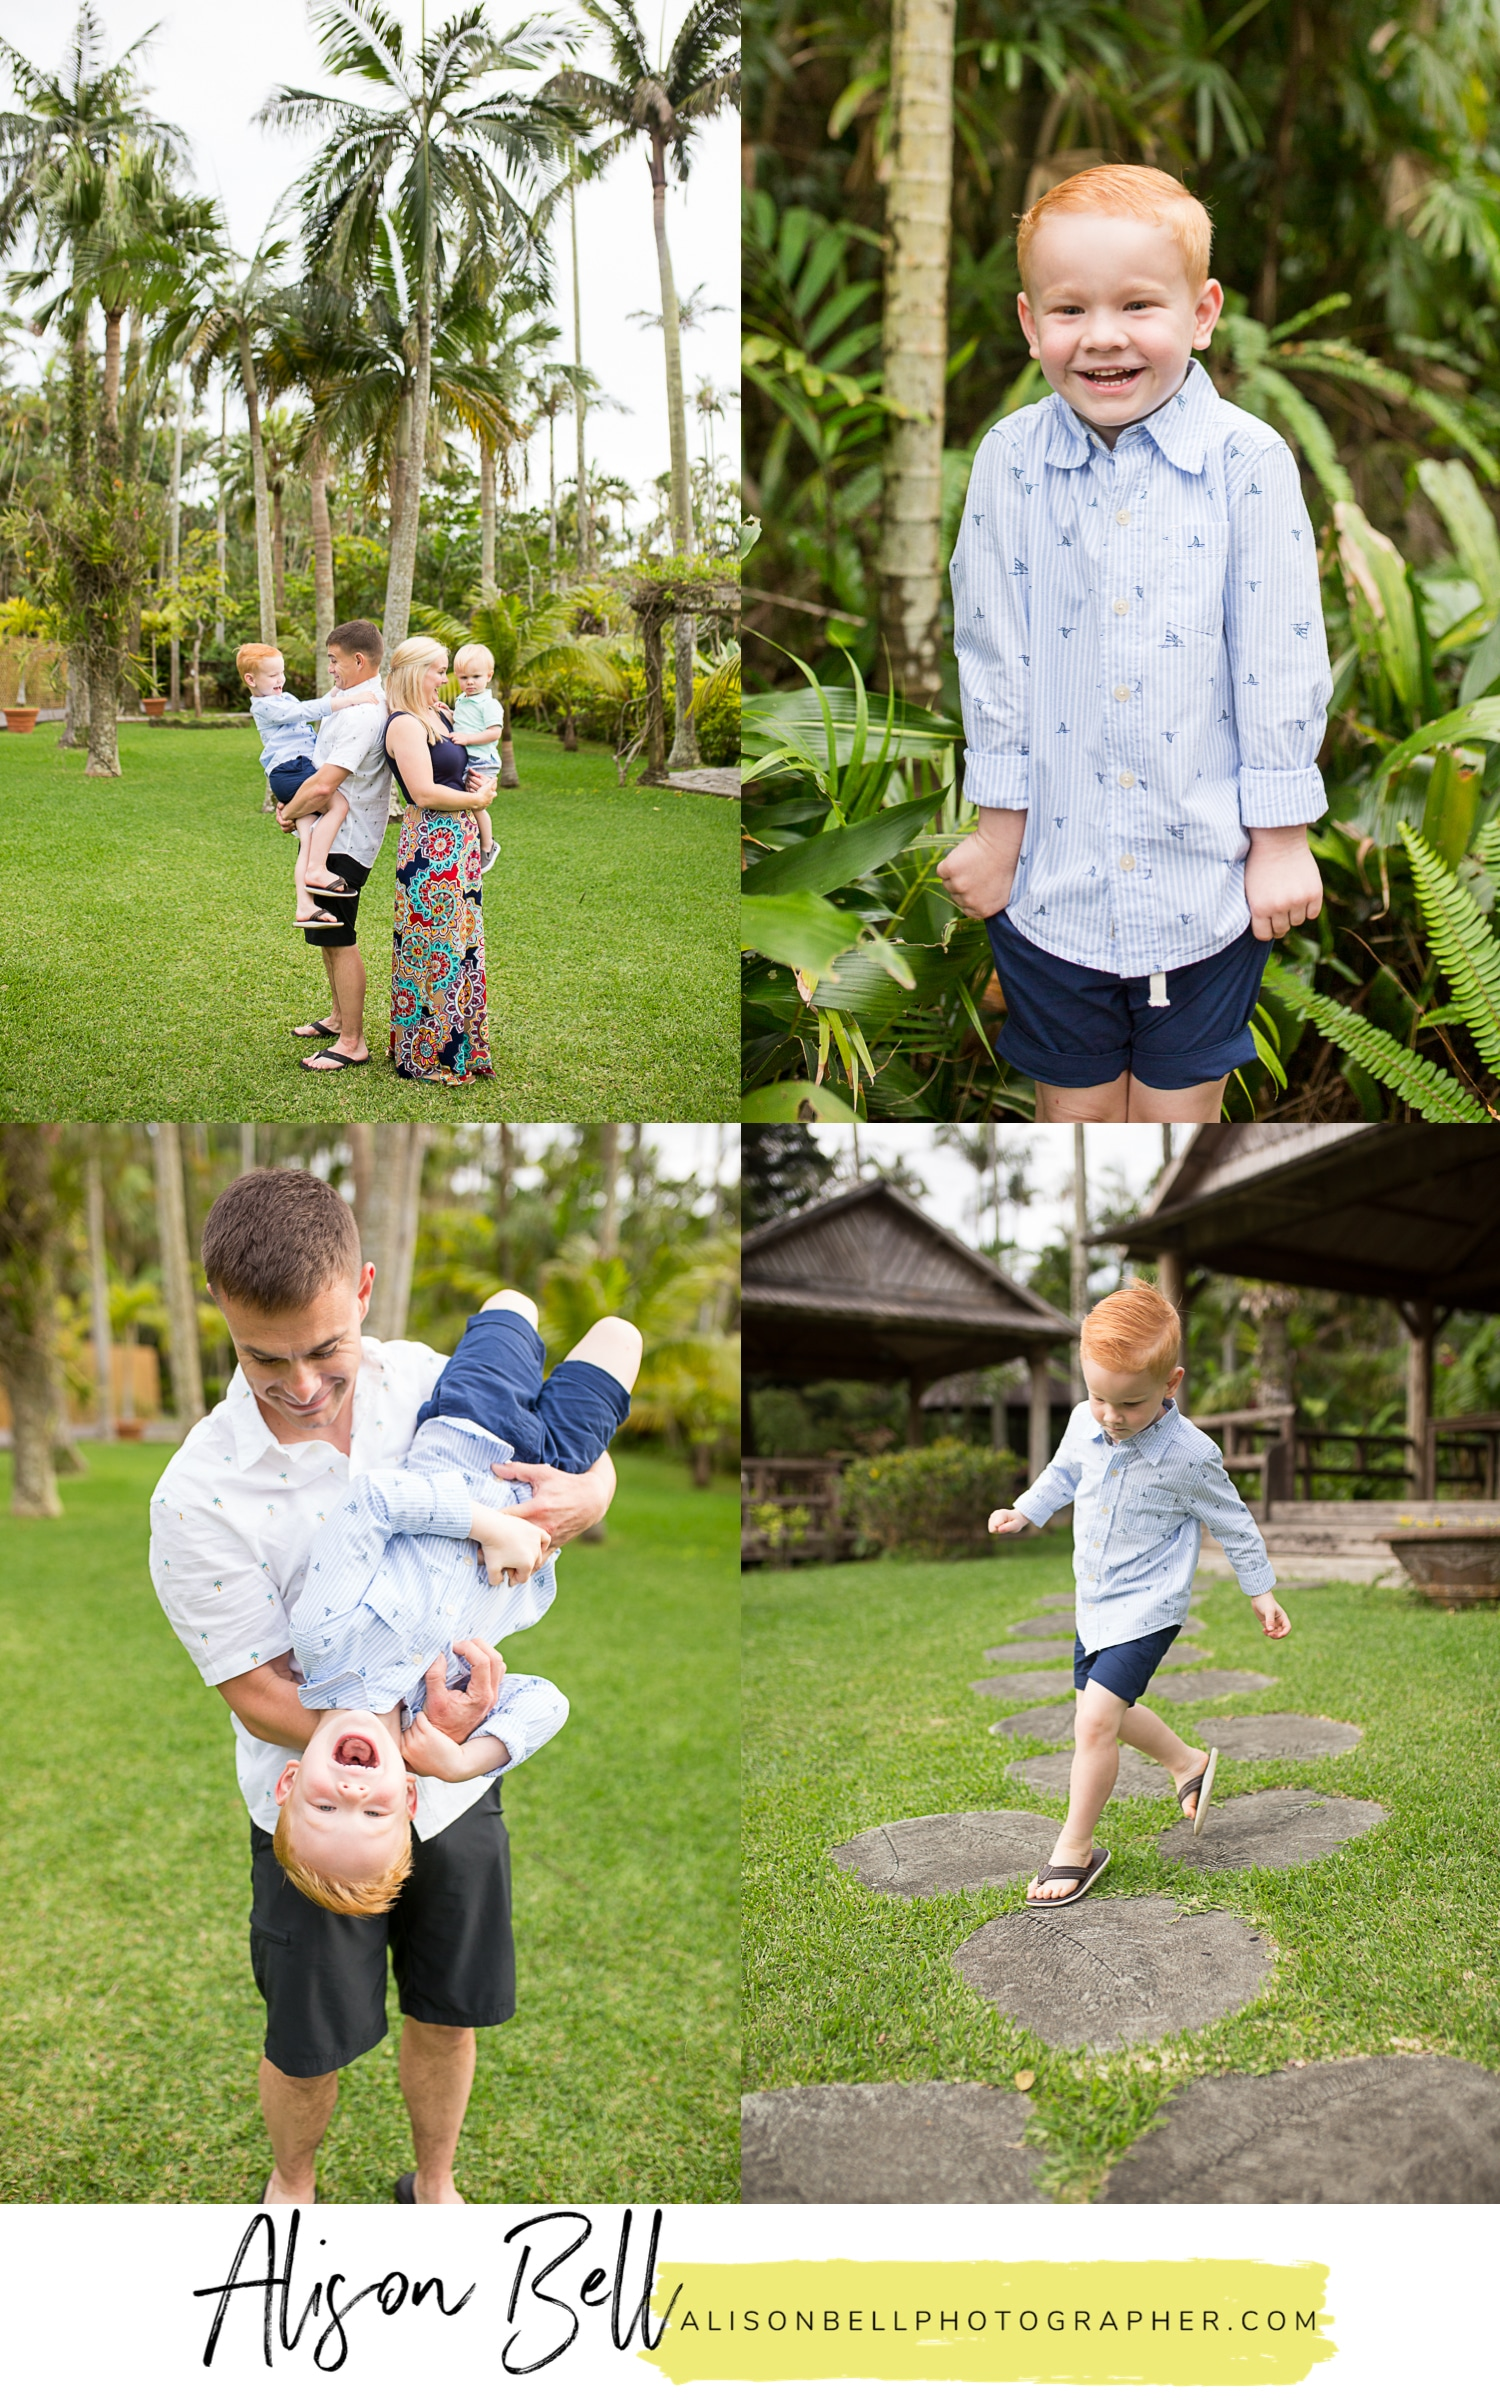 Family of four photo session at Okinawa's Southeast Botanical Gardens by Alison Bell, Photographer